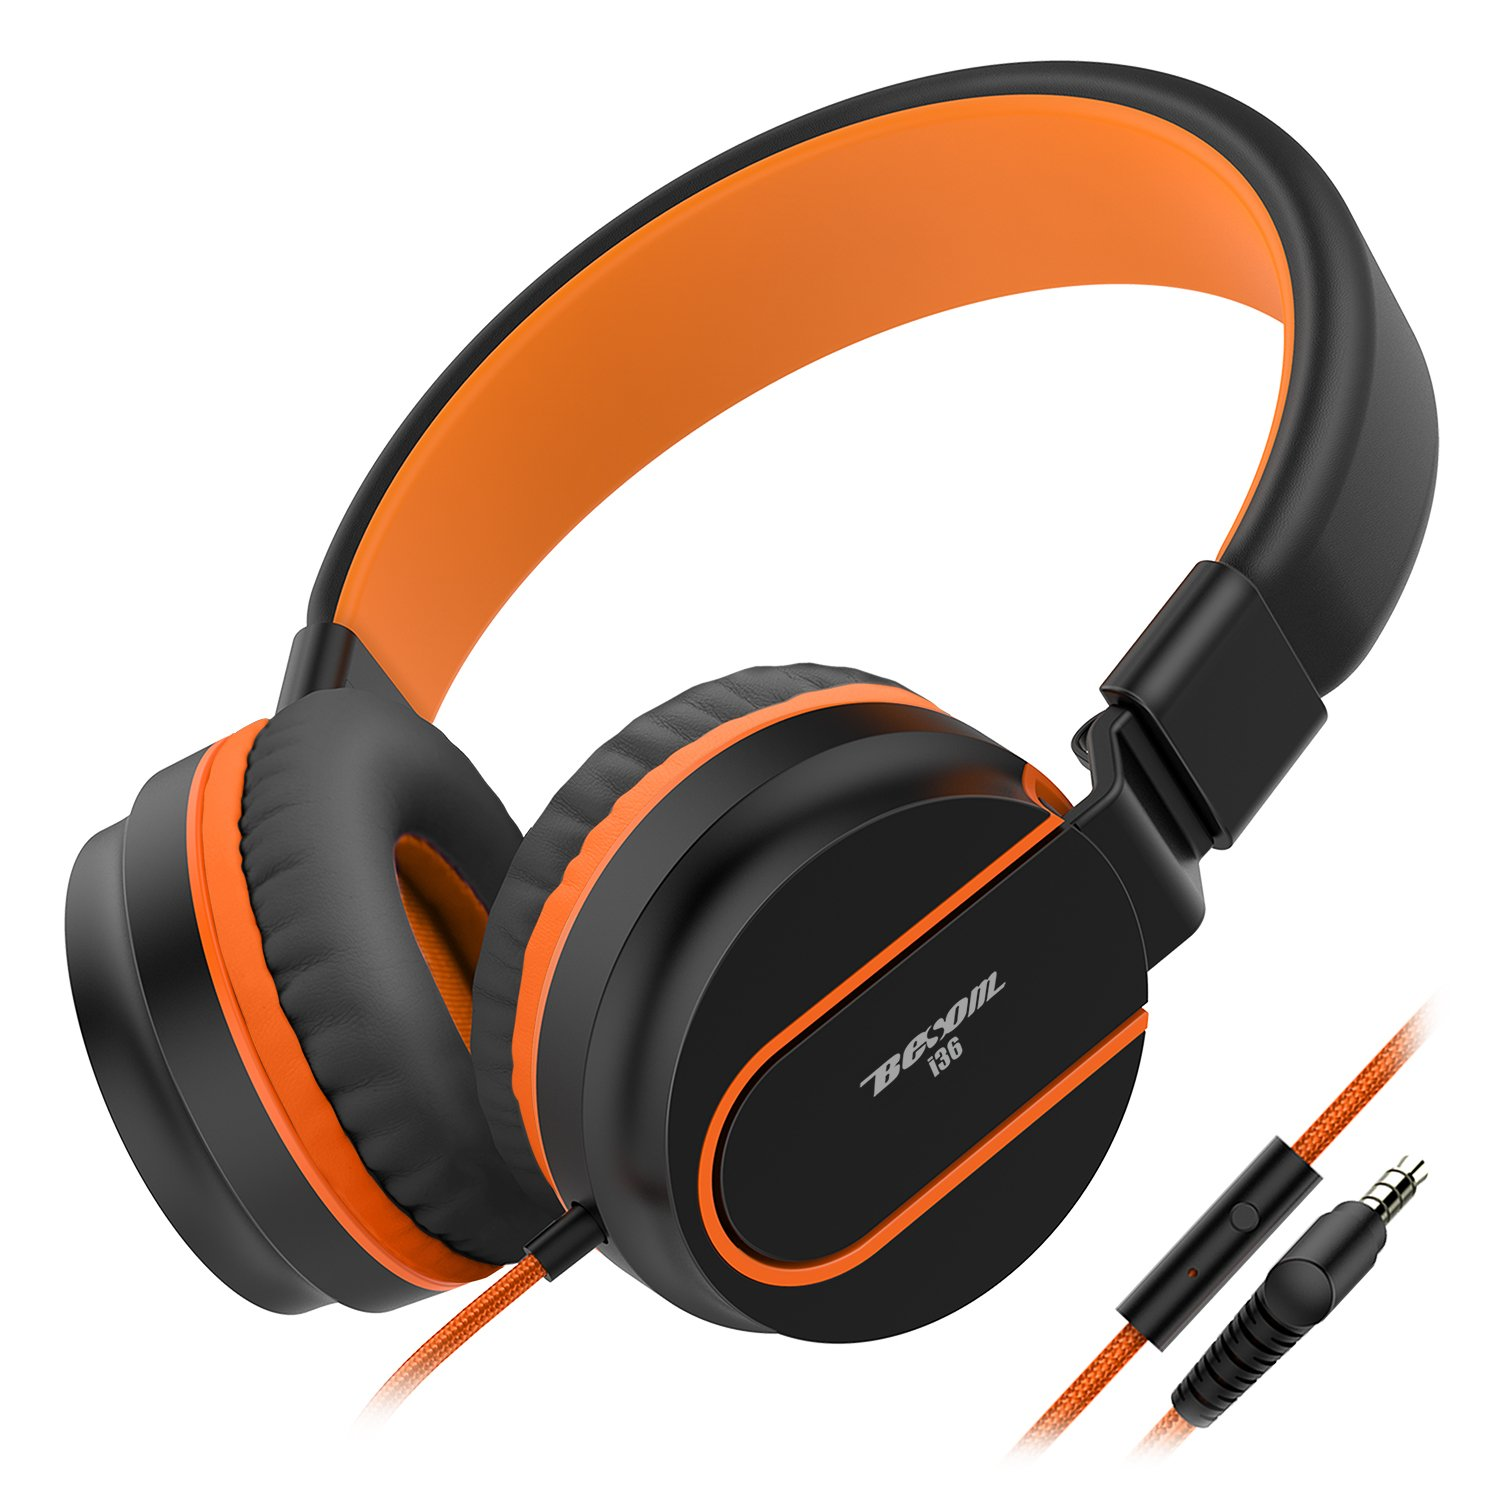 Besom i36 Headphones for Kids,Girls,Boys,Teens,Adults,Stereo Lightweight Adjustable Foldable Wired Headset with Mic 3.5mm Jack for iPad Cellphones Computer Mp3/4 Tablet School Airplane(Black Orange)